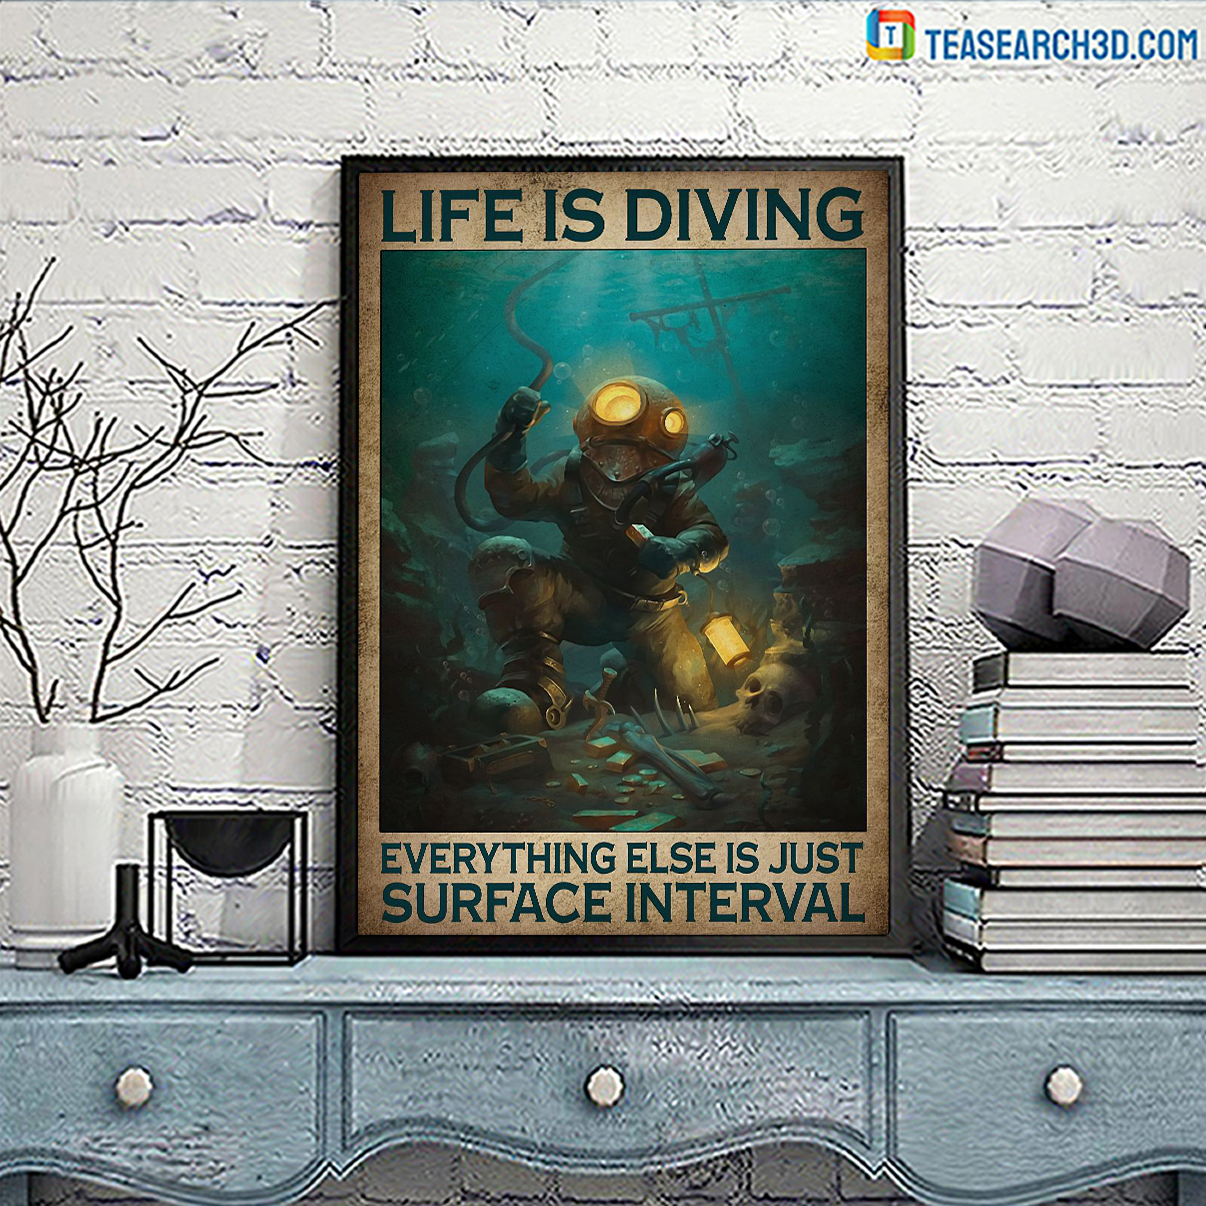 Life is diving everything else is just surface interval poster